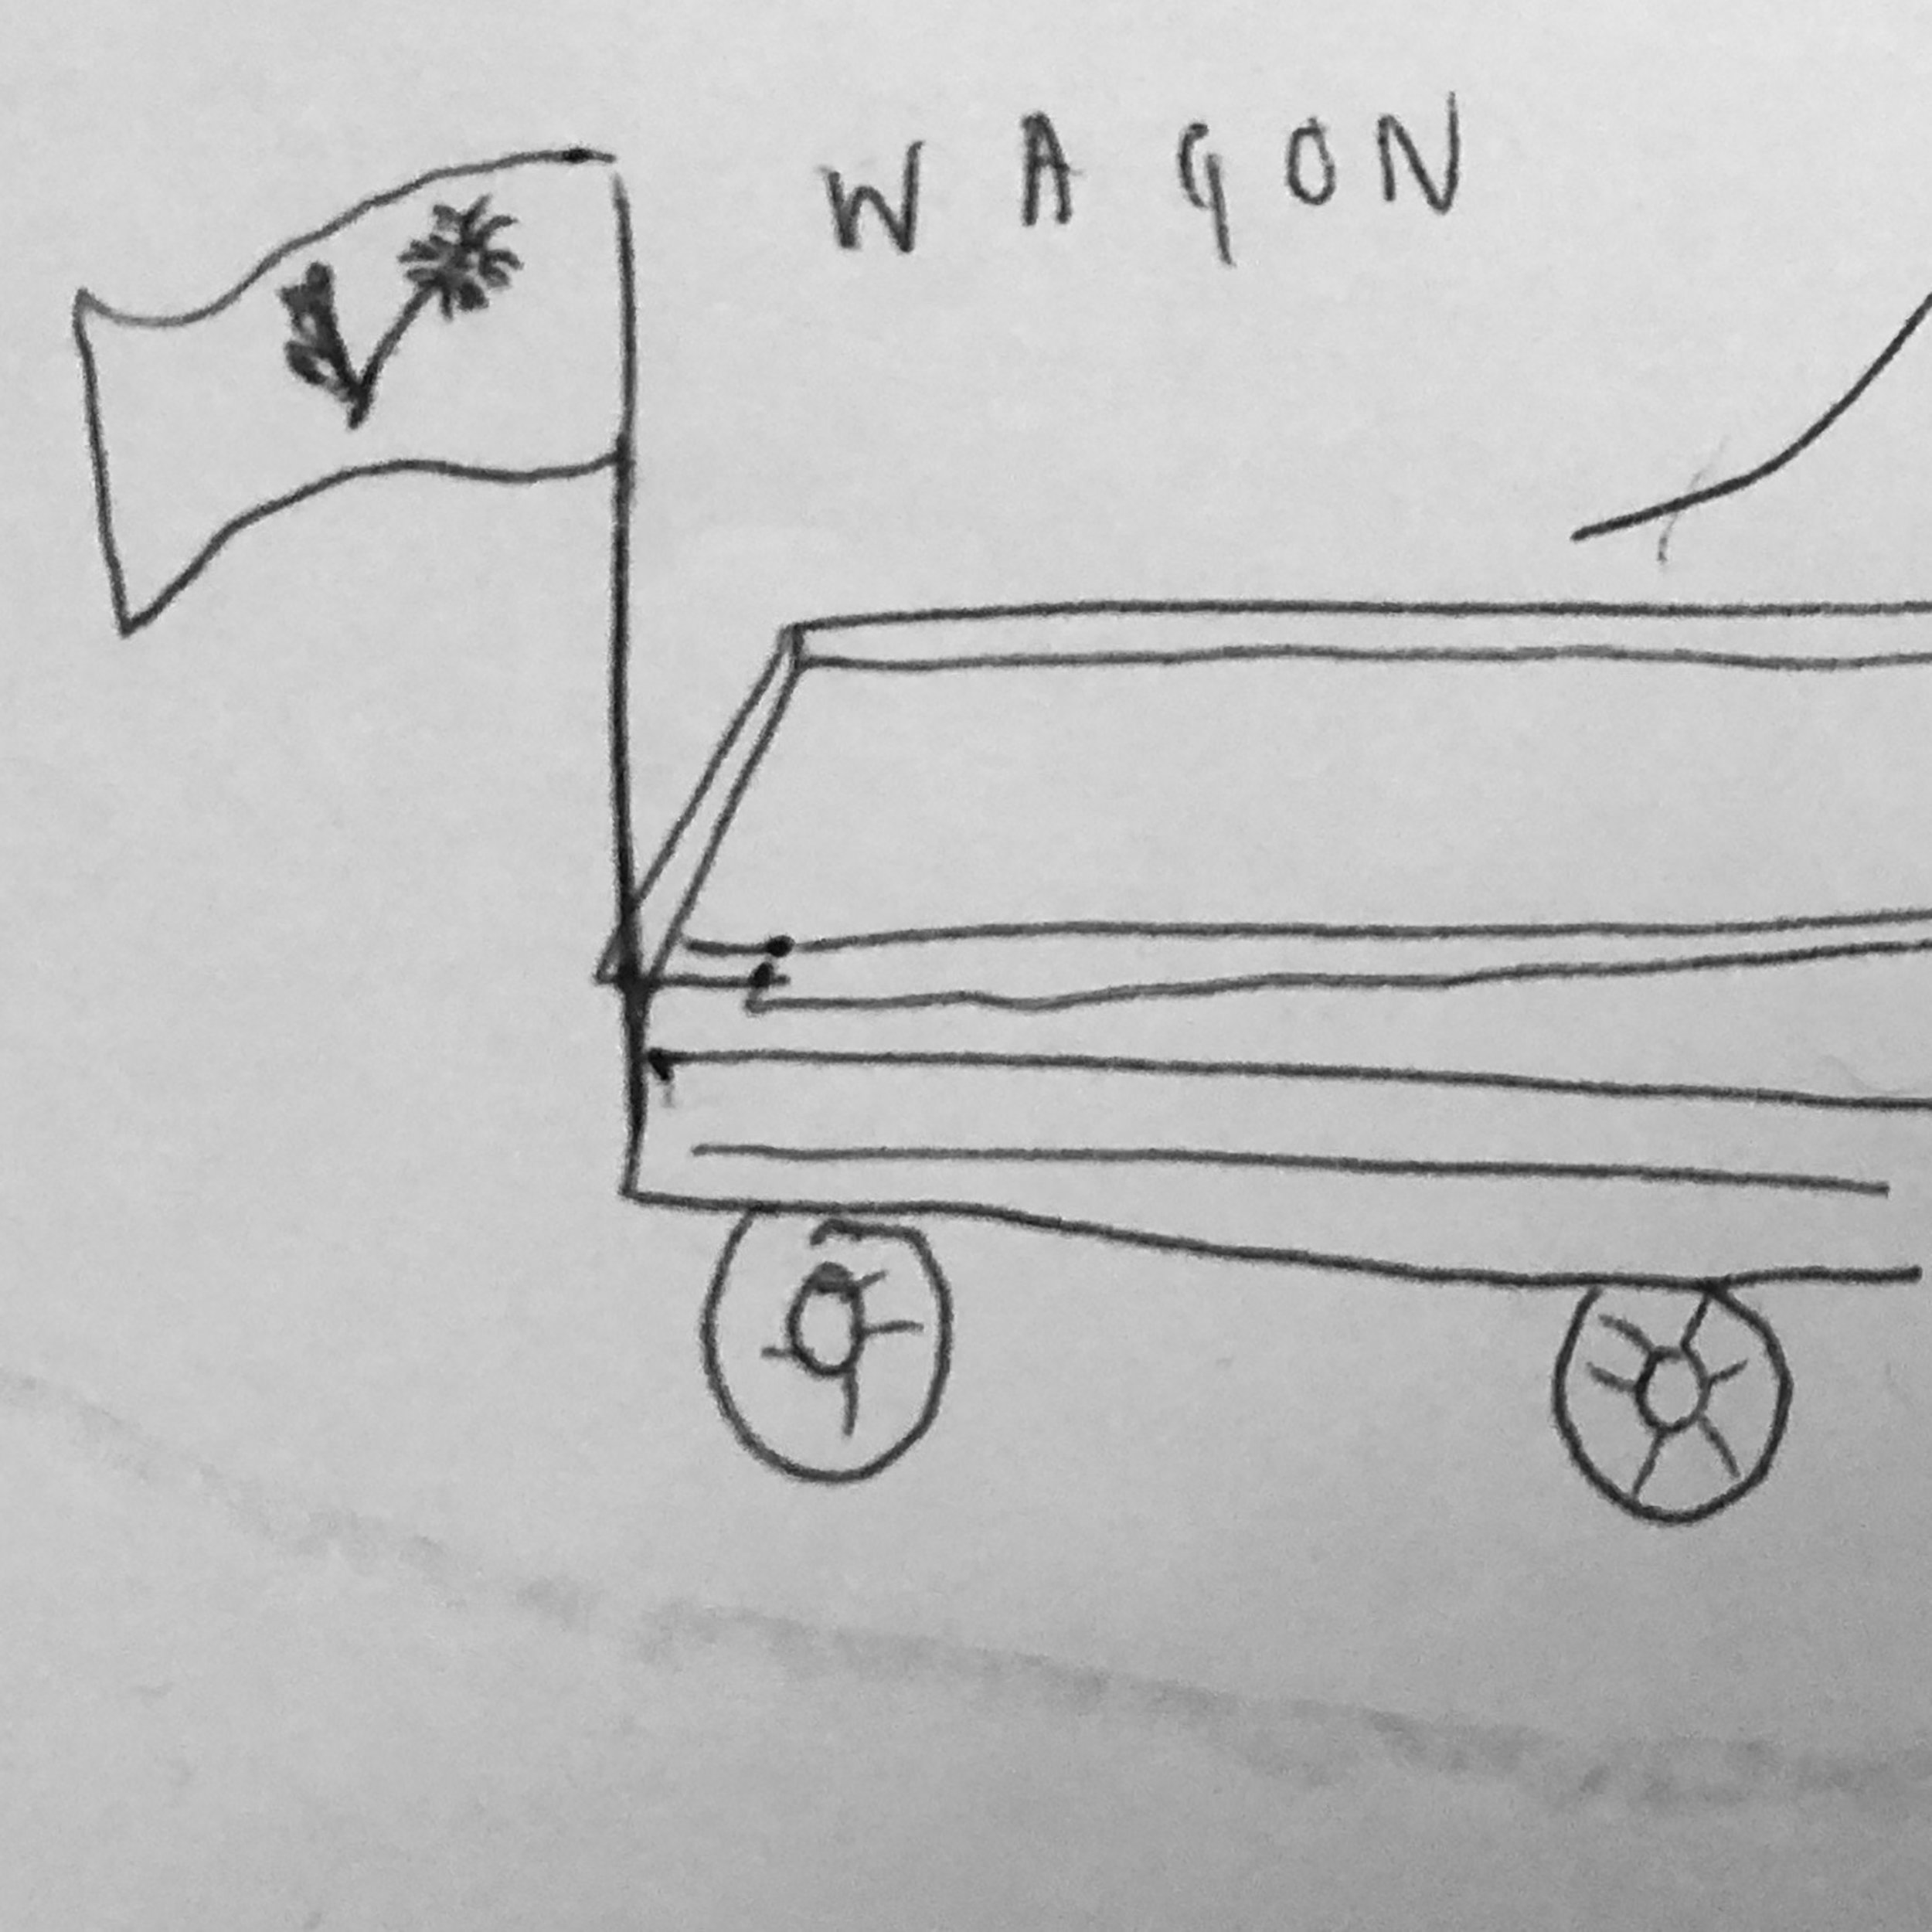 CONQUEST WAGON - COMING SOON